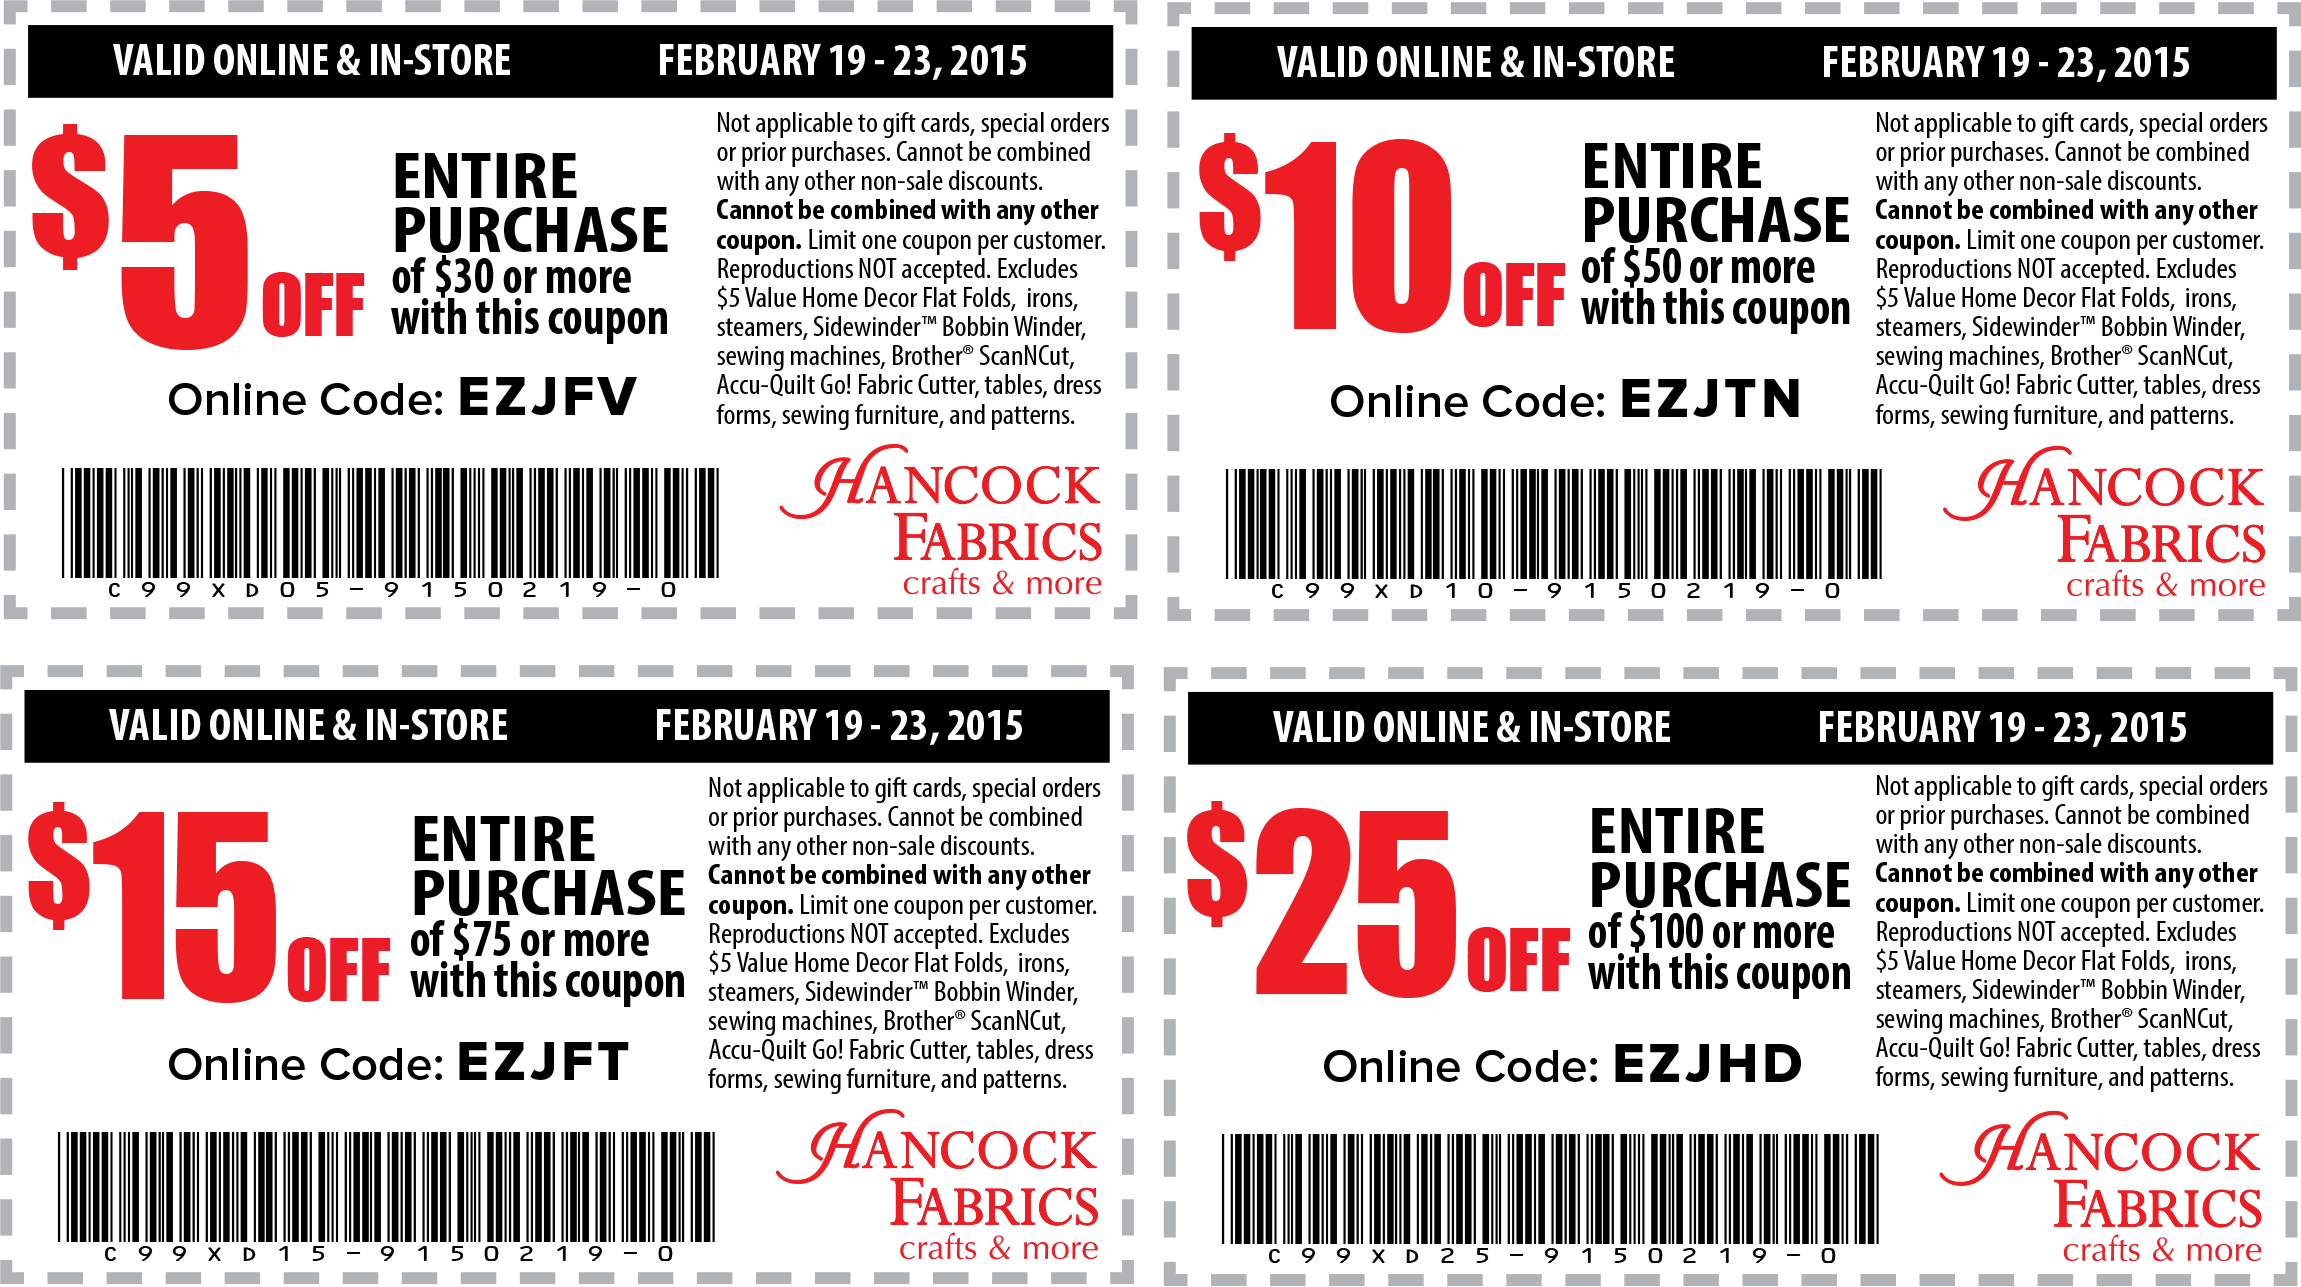 Hancock fabric coupon code